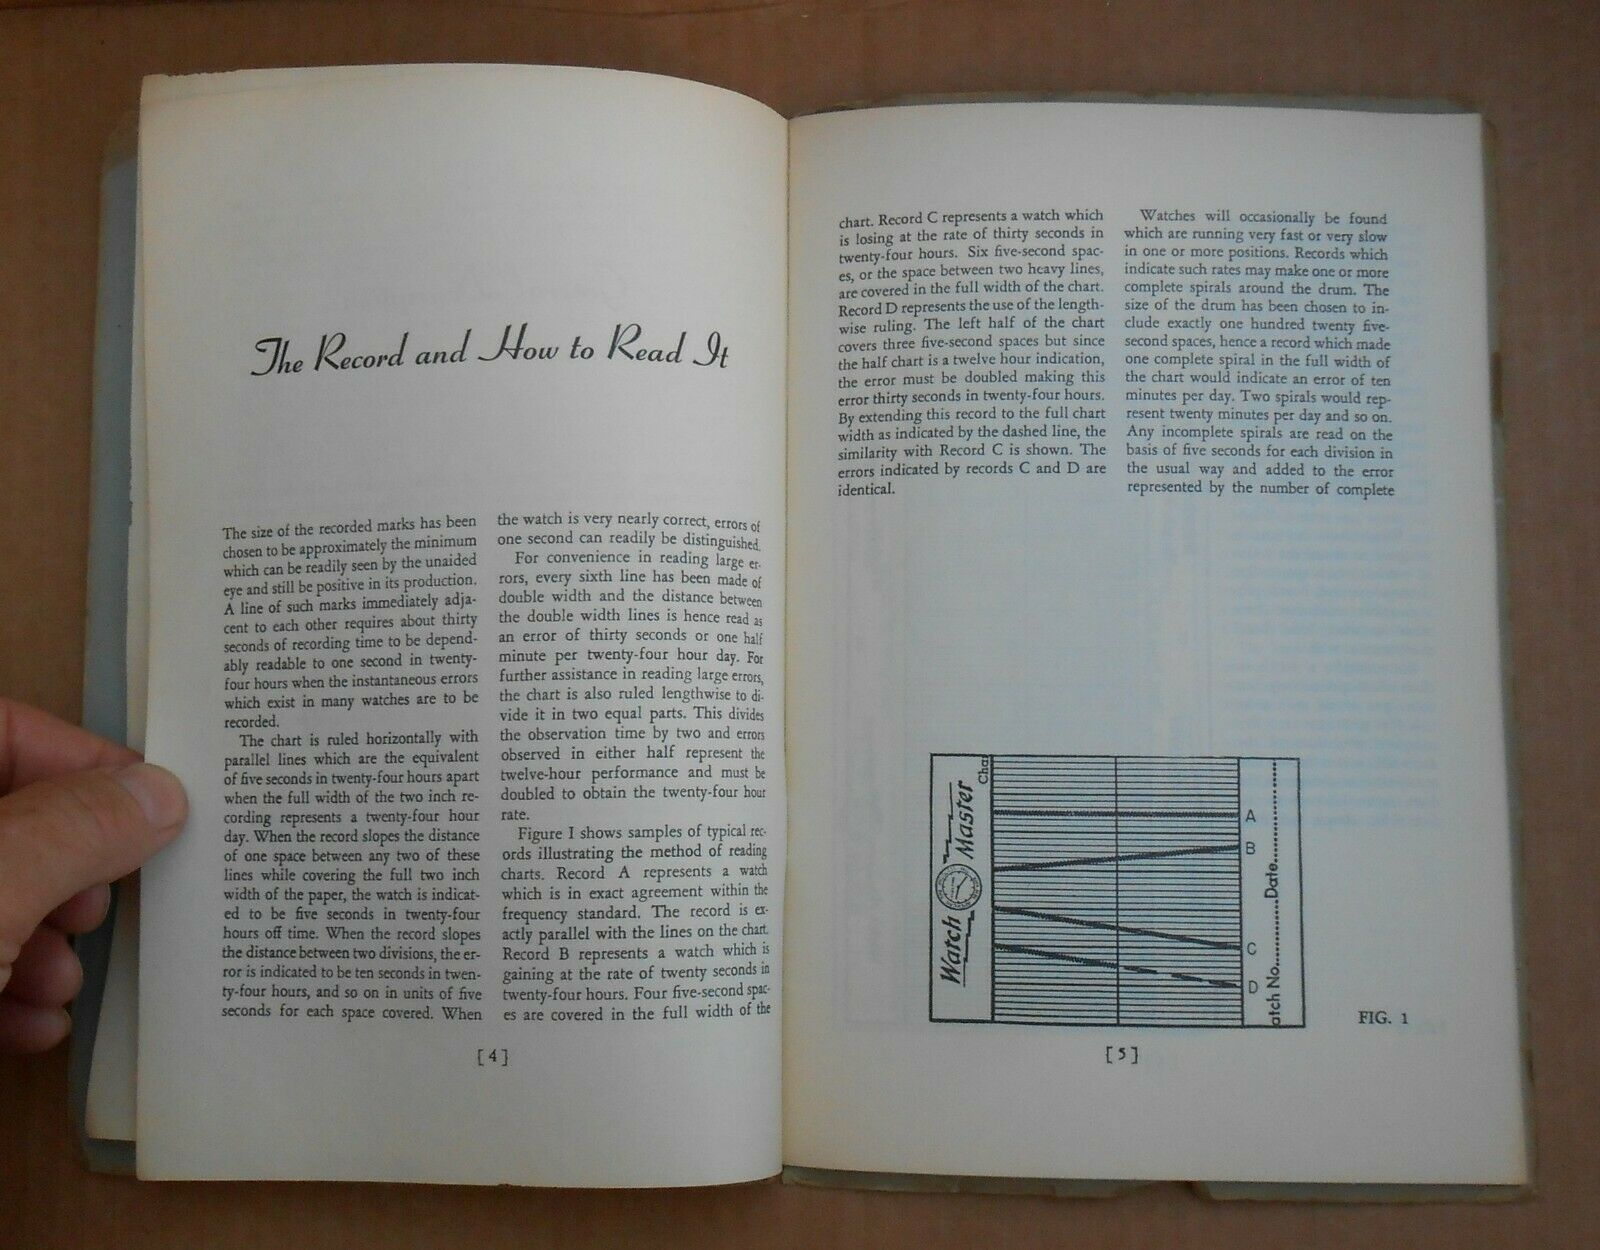 Vintage 1948 Timepiece Watch Master Hand Book WatchMaster Watch-Rate Recorder image 4